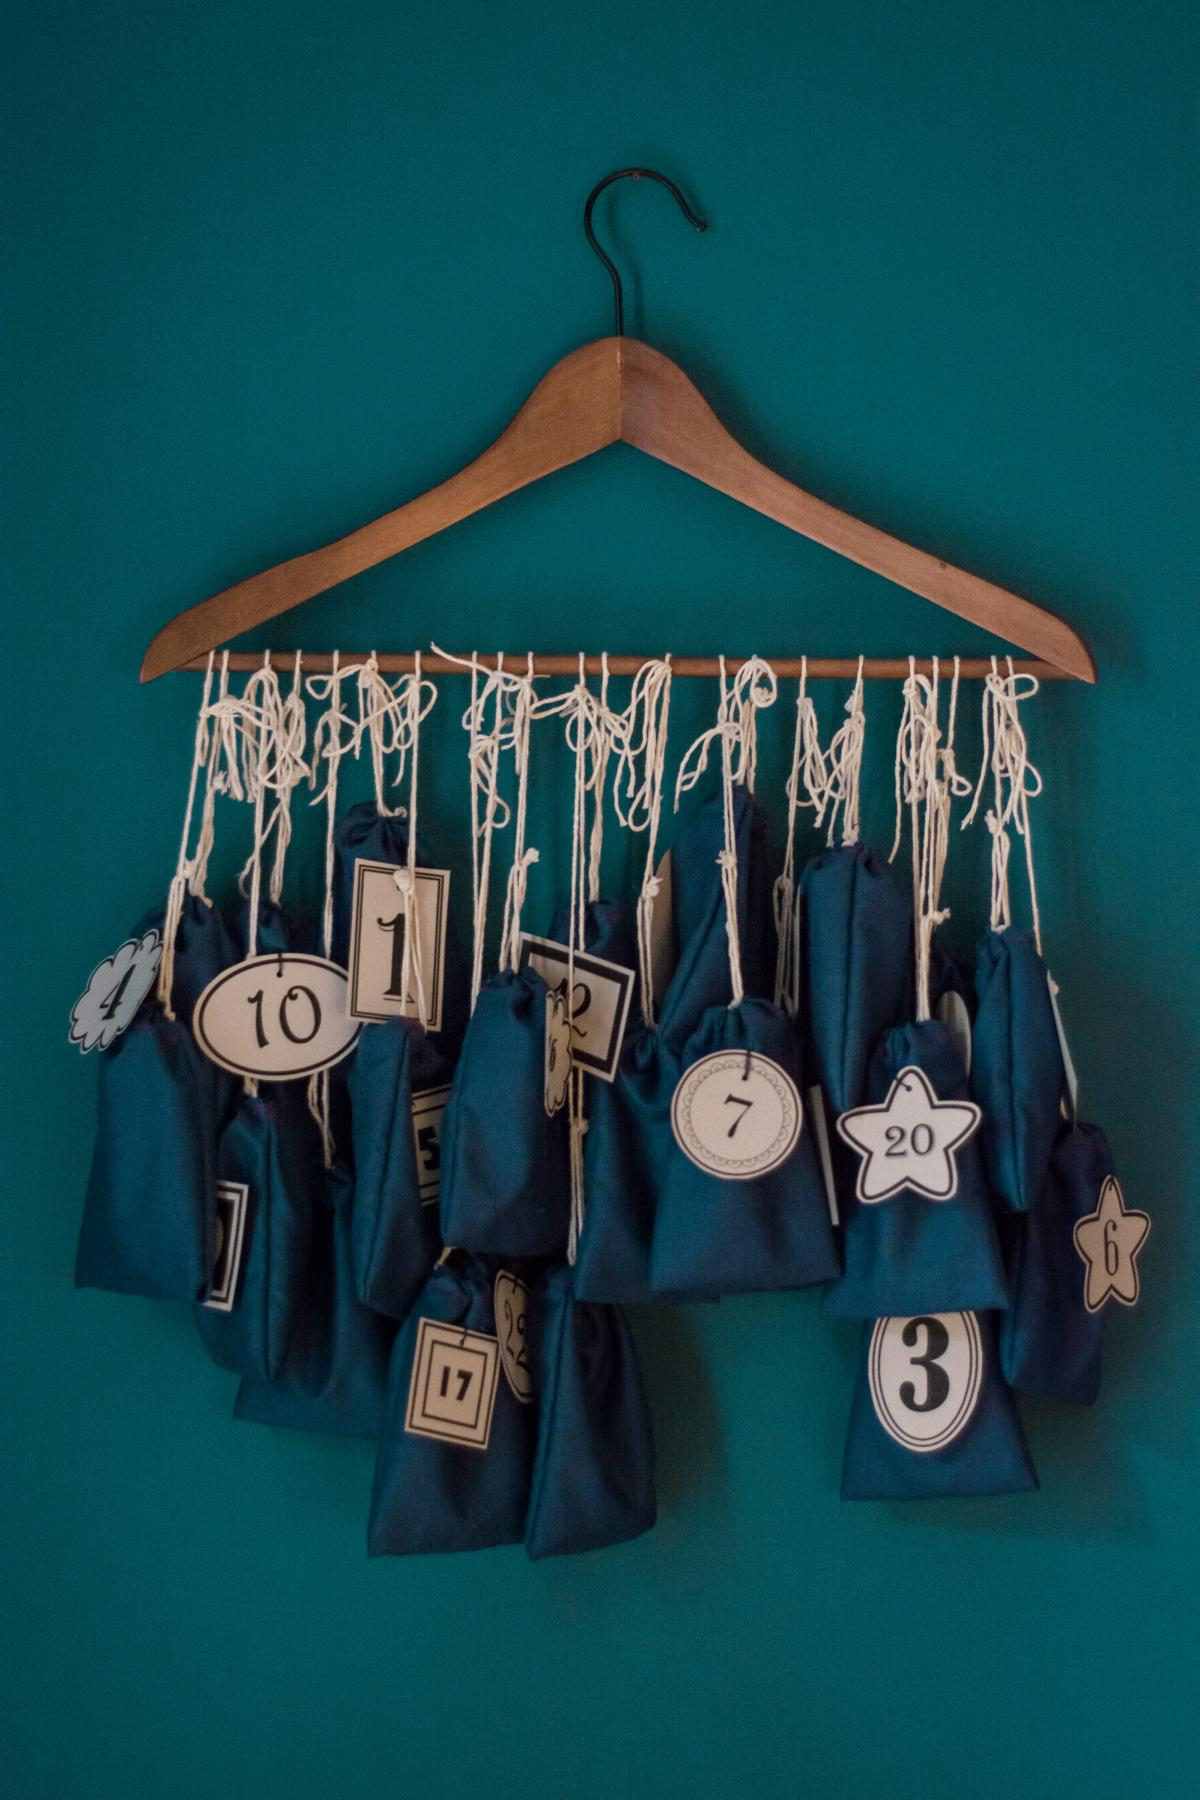 adventskalender-saeckchen-am-buegel-diy